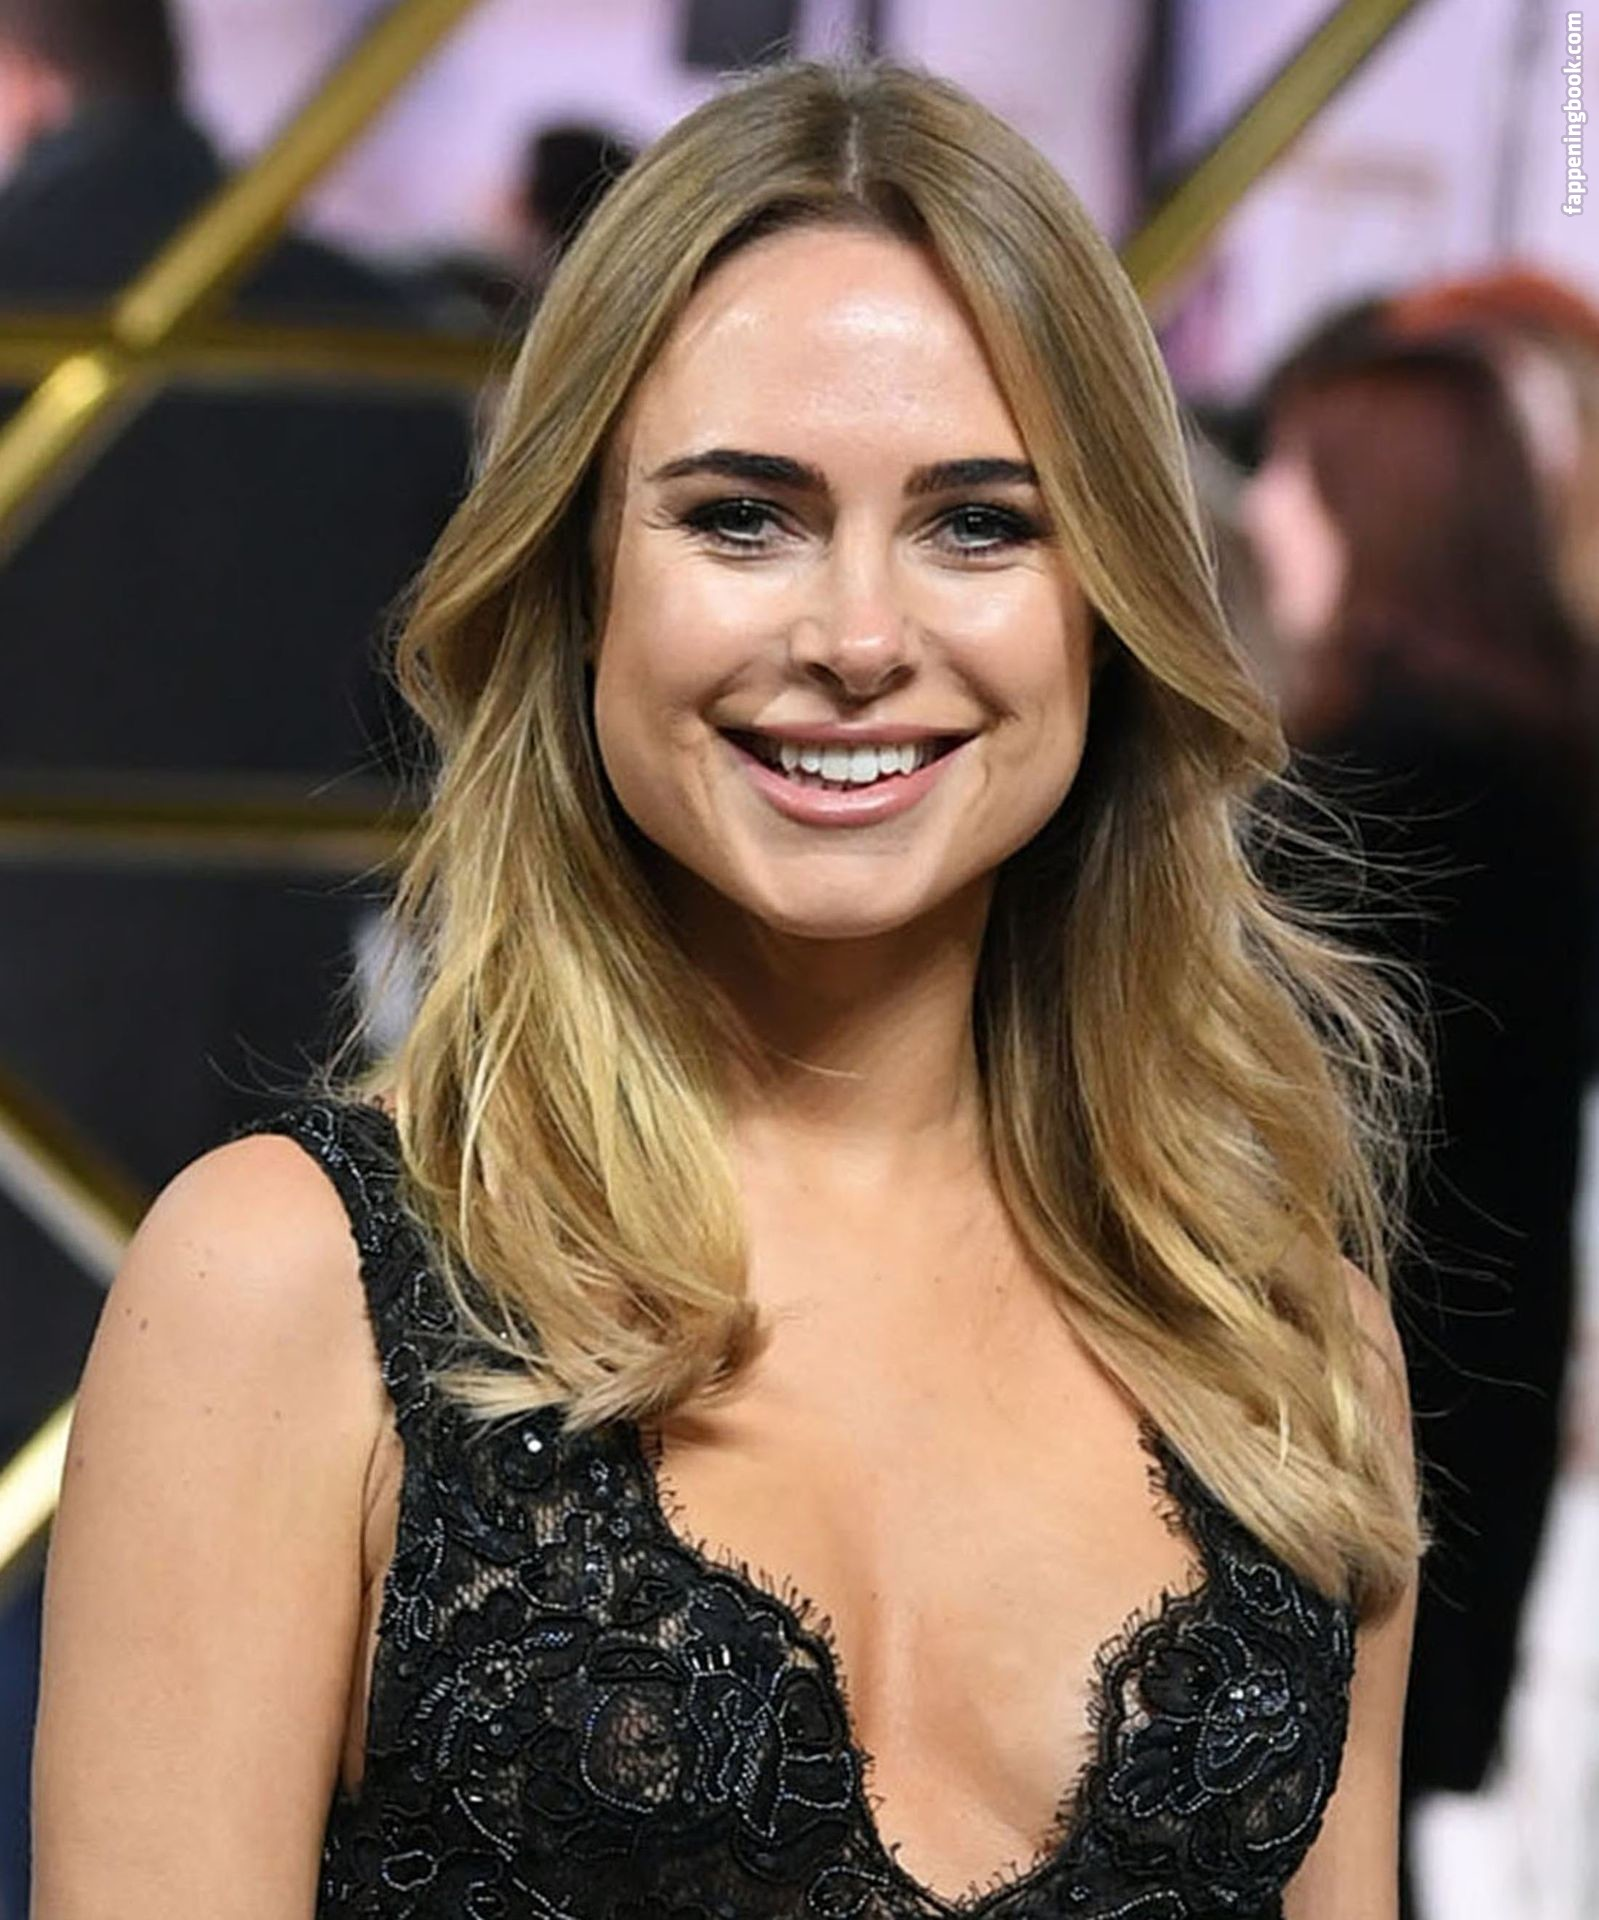 Kimberley Garner Nude, Sexy, The Fappening, Uncensored